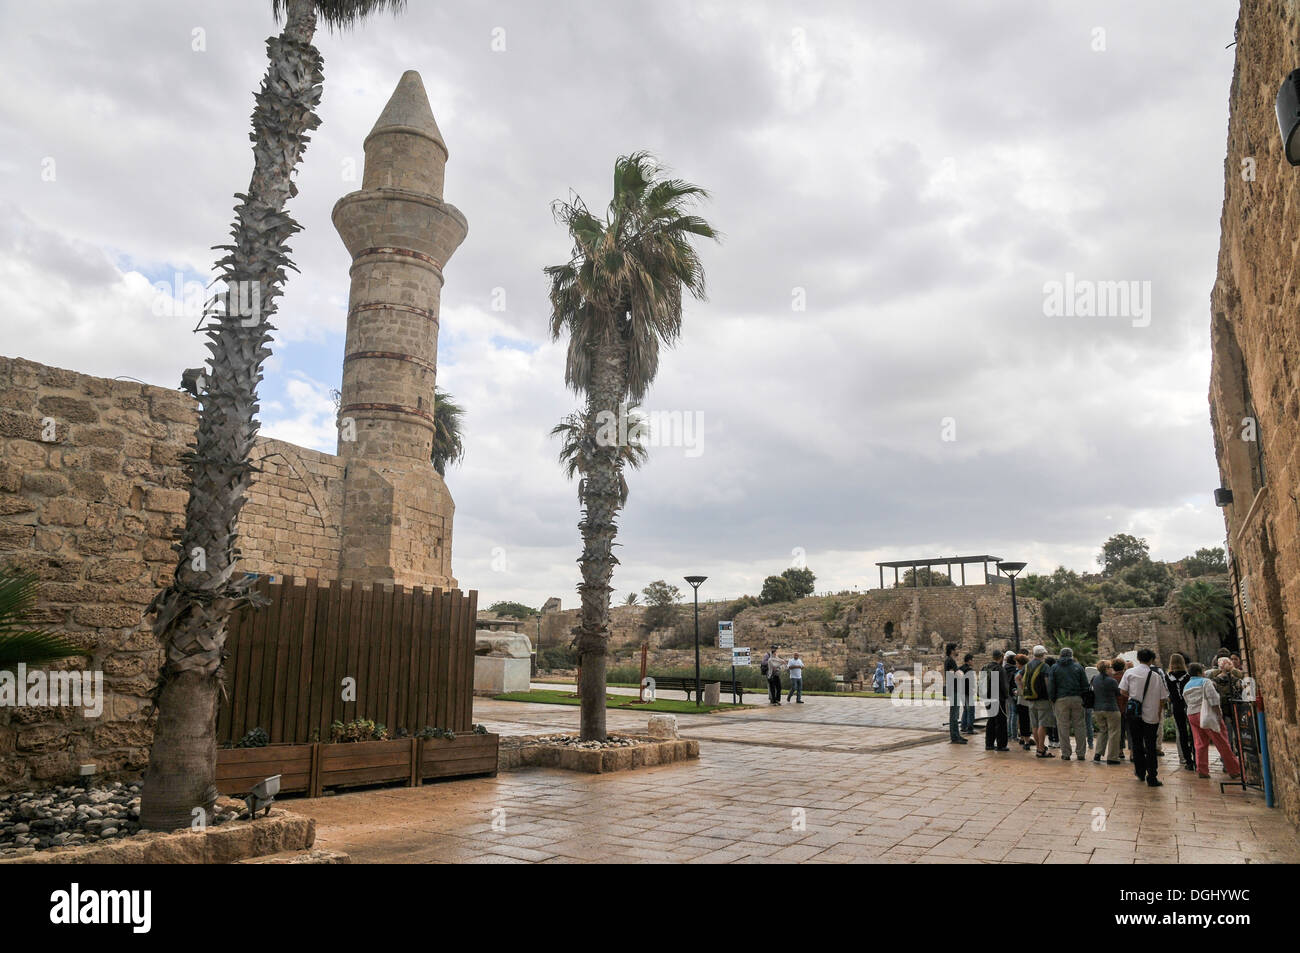 Turret of the mosque, erected by Moslems from Bosnia, Caesarea, Israel - Stock Image